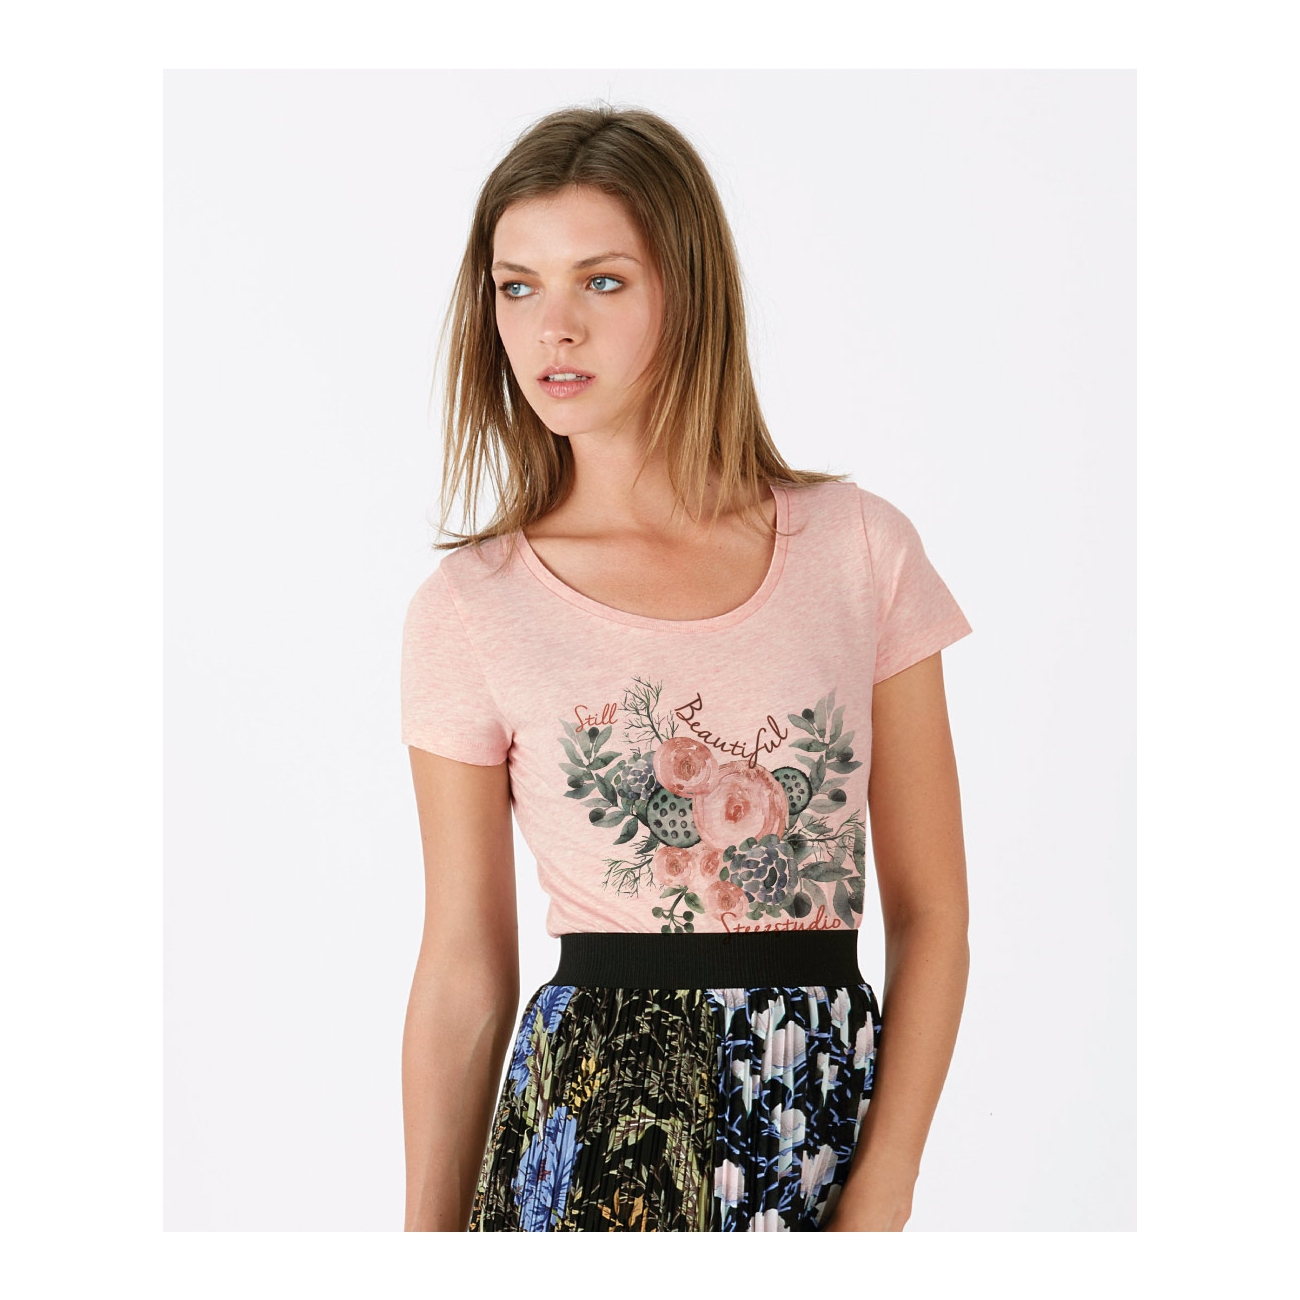 https://tee-shirt-bio.com/4487-thickbox_default/tee-shirt-rose-tendre-chine-femme-impression-cerf-space-coton-bio-equitable-mode-bio-ethique-imprime-bouquet.jpg